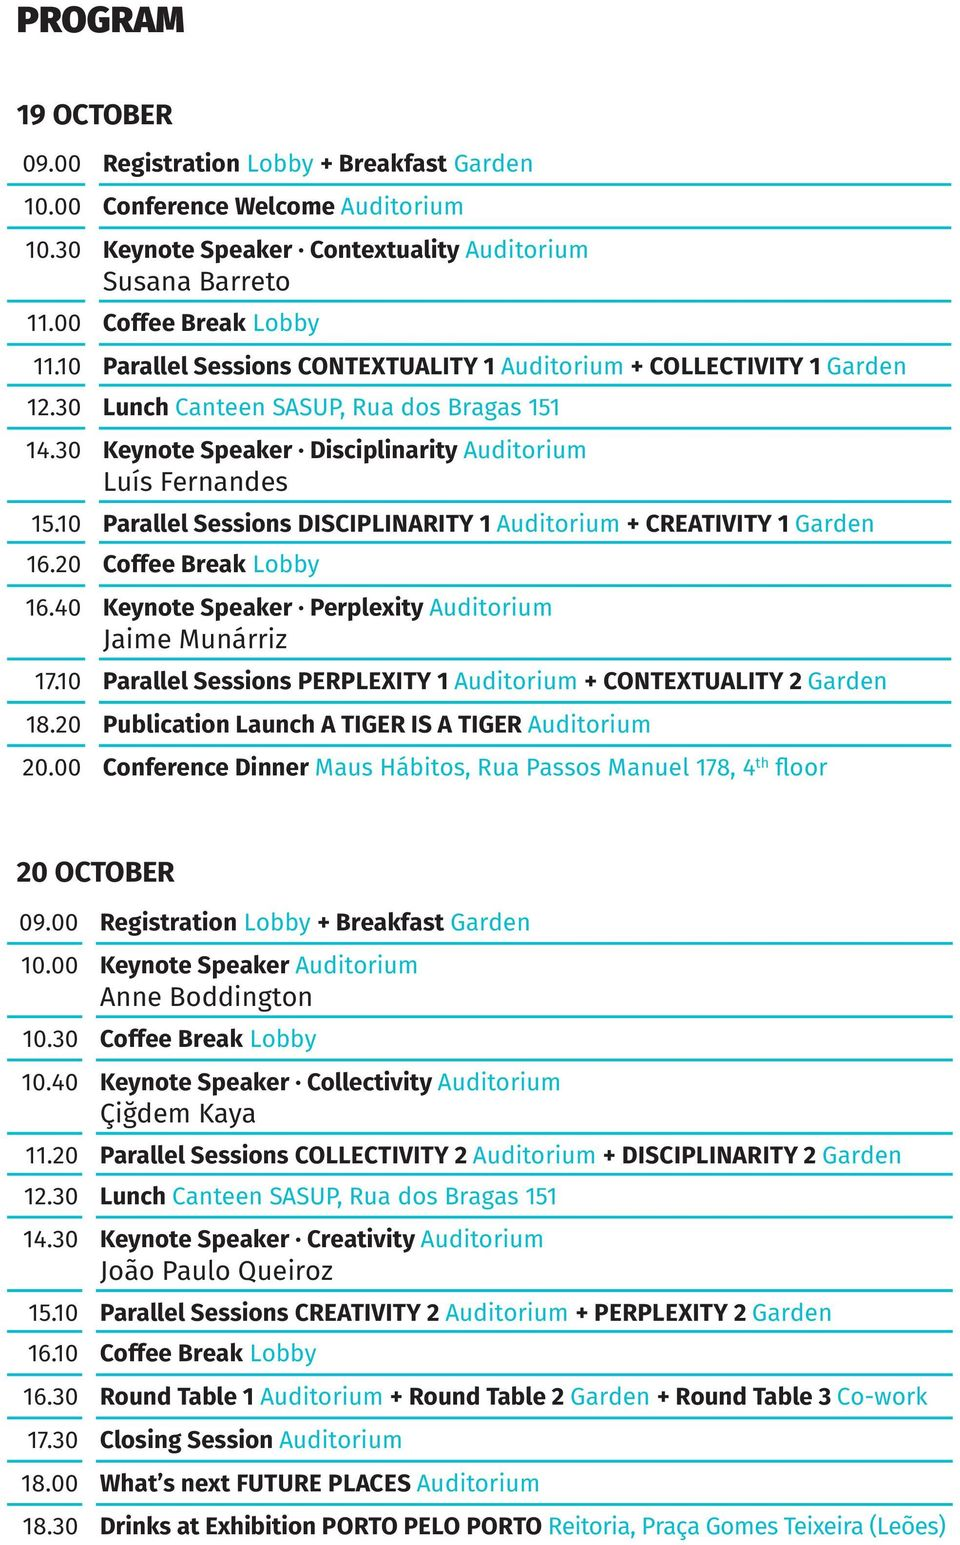 10 Parallel Sessions DISCIPLINARITY 1 Auditorium + CREATIVITY 1 Garden 16.20 Coffee Break Lobby 16.40 Keynote Speaker Perplexity Auditorium Jaime Munárriz 17.